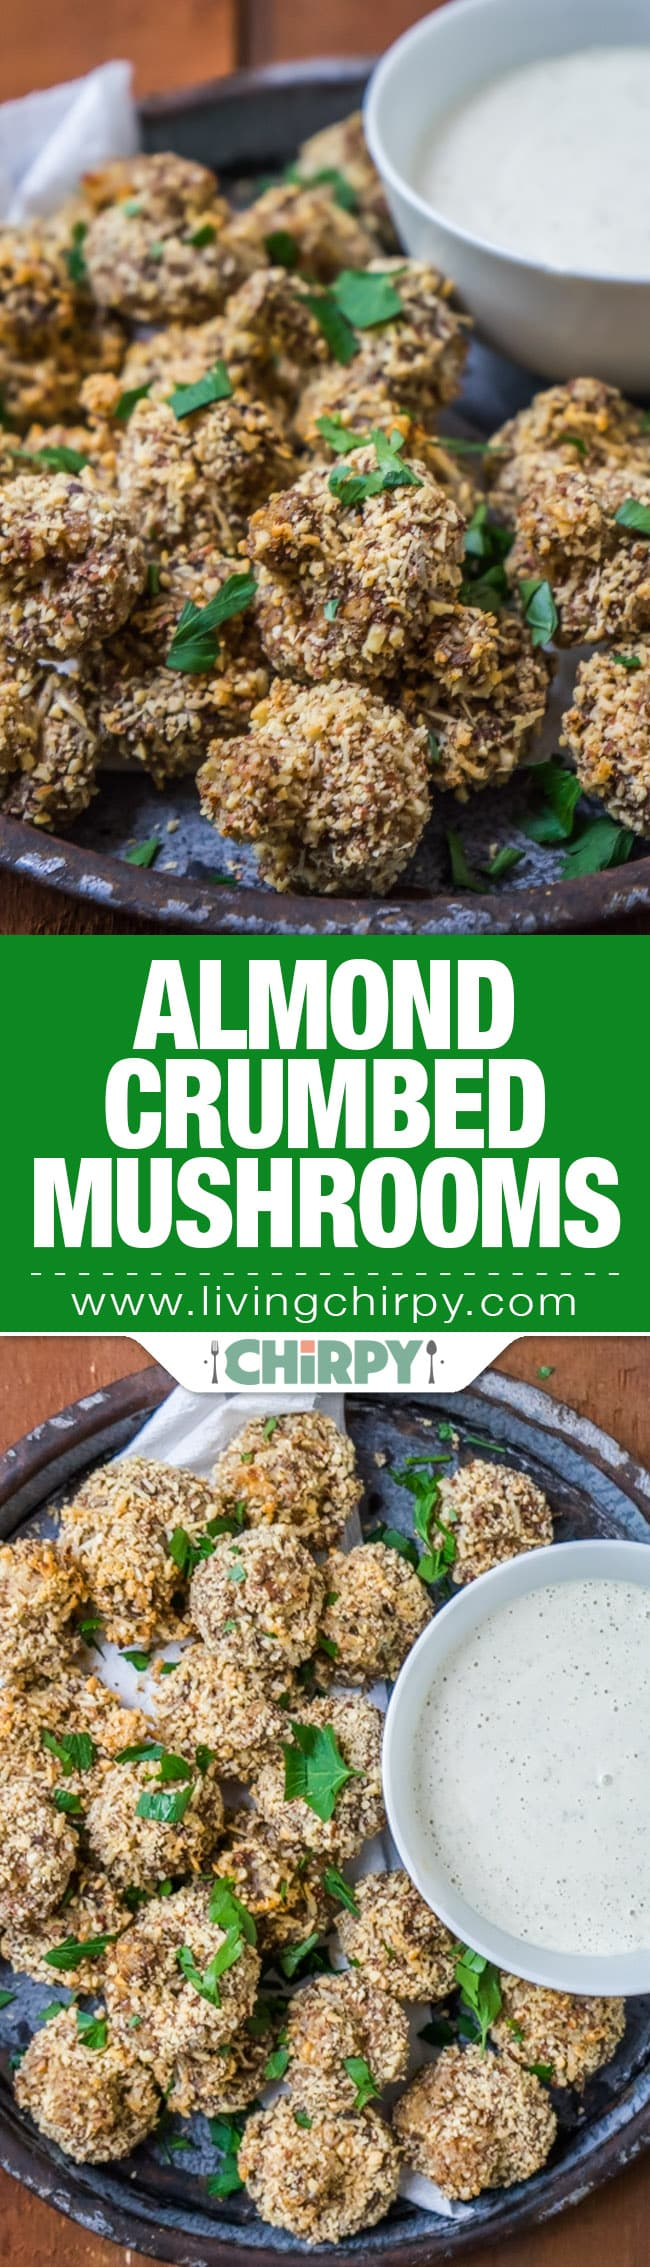 almond-crumbed-mushrooms 3